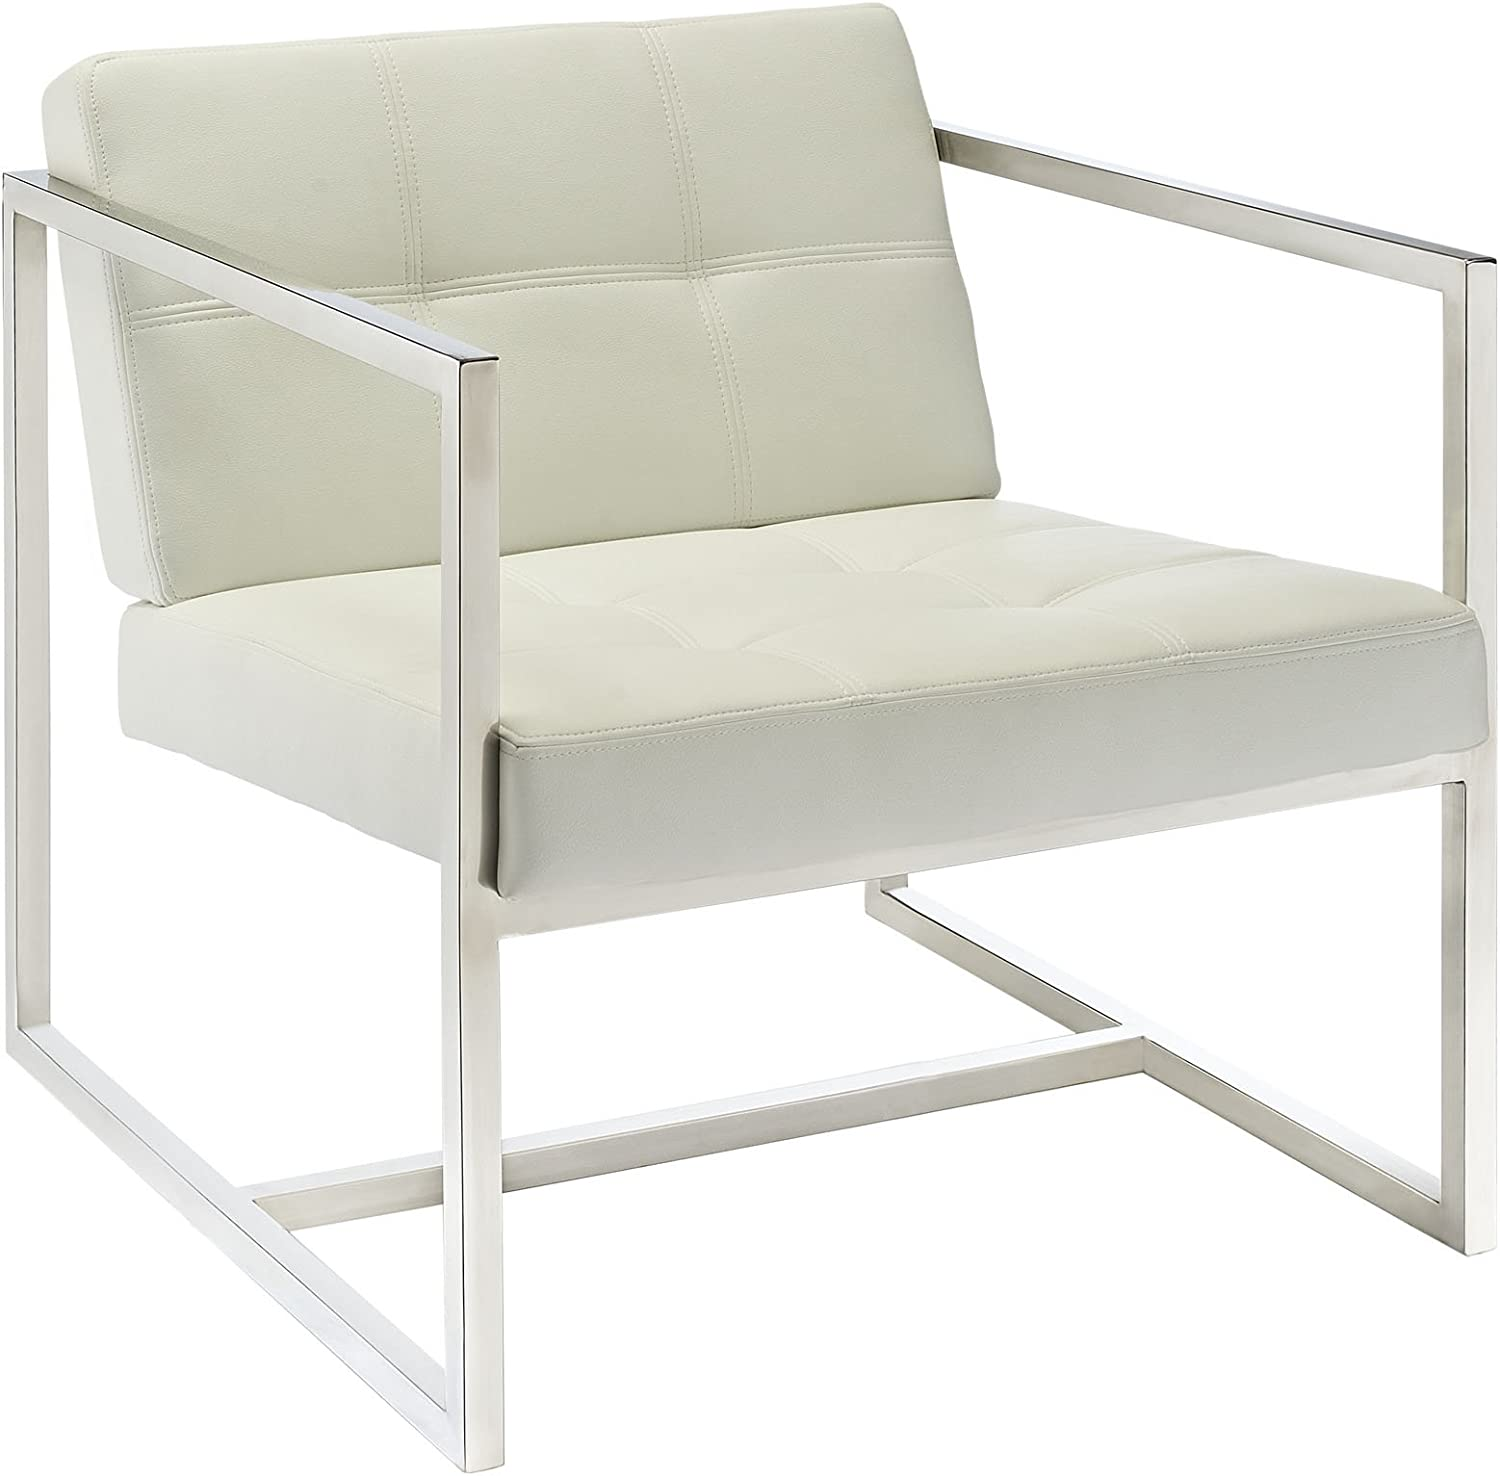 Modway Hover Modern Reception Chair, White